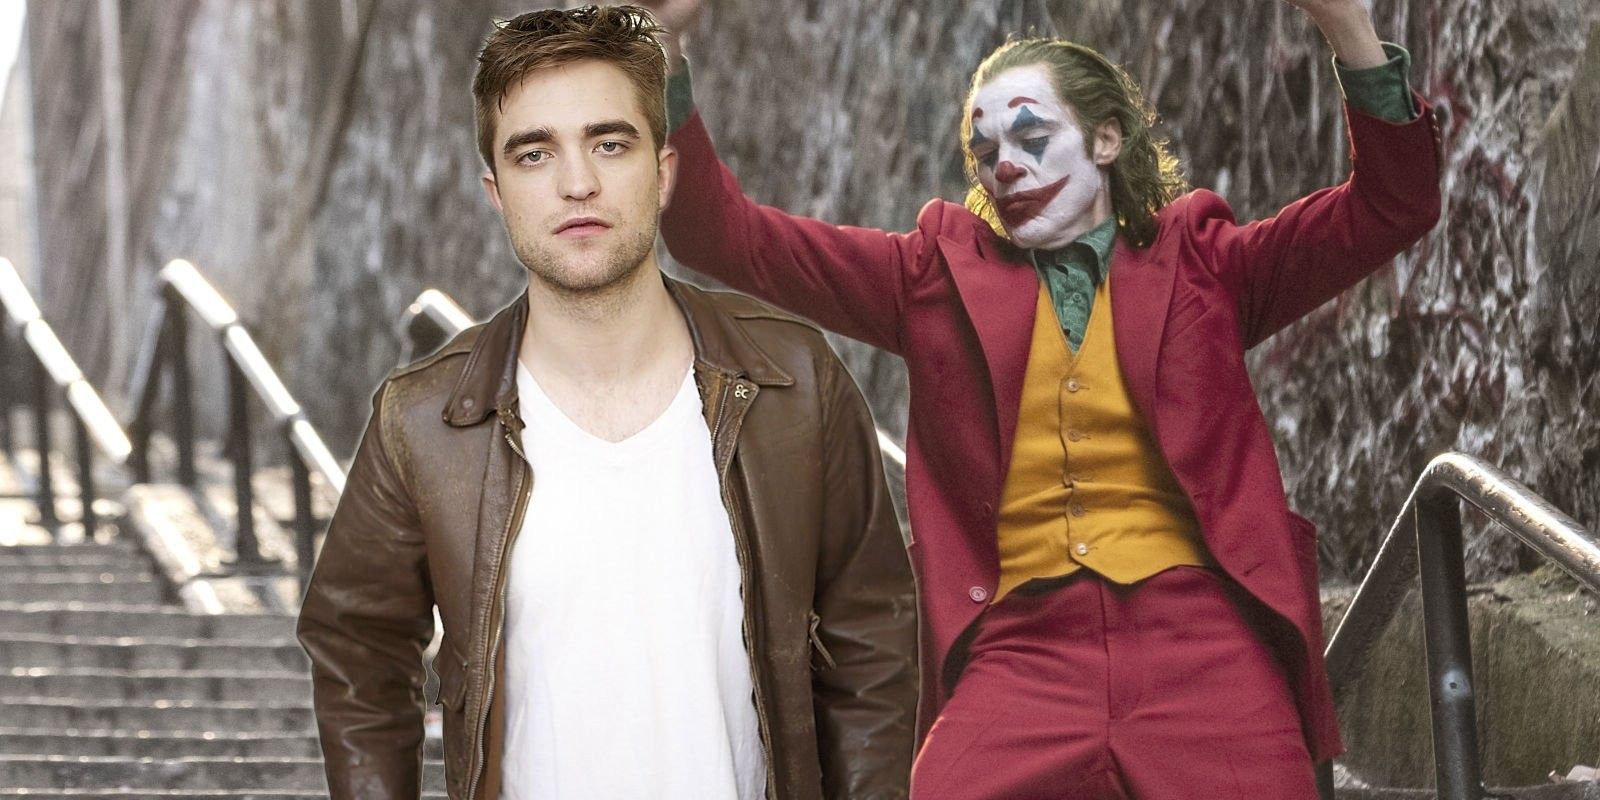 El Joker de Joaquin Phoenix y Todd Phillips no conocerá al Batman de Robert Pattinson